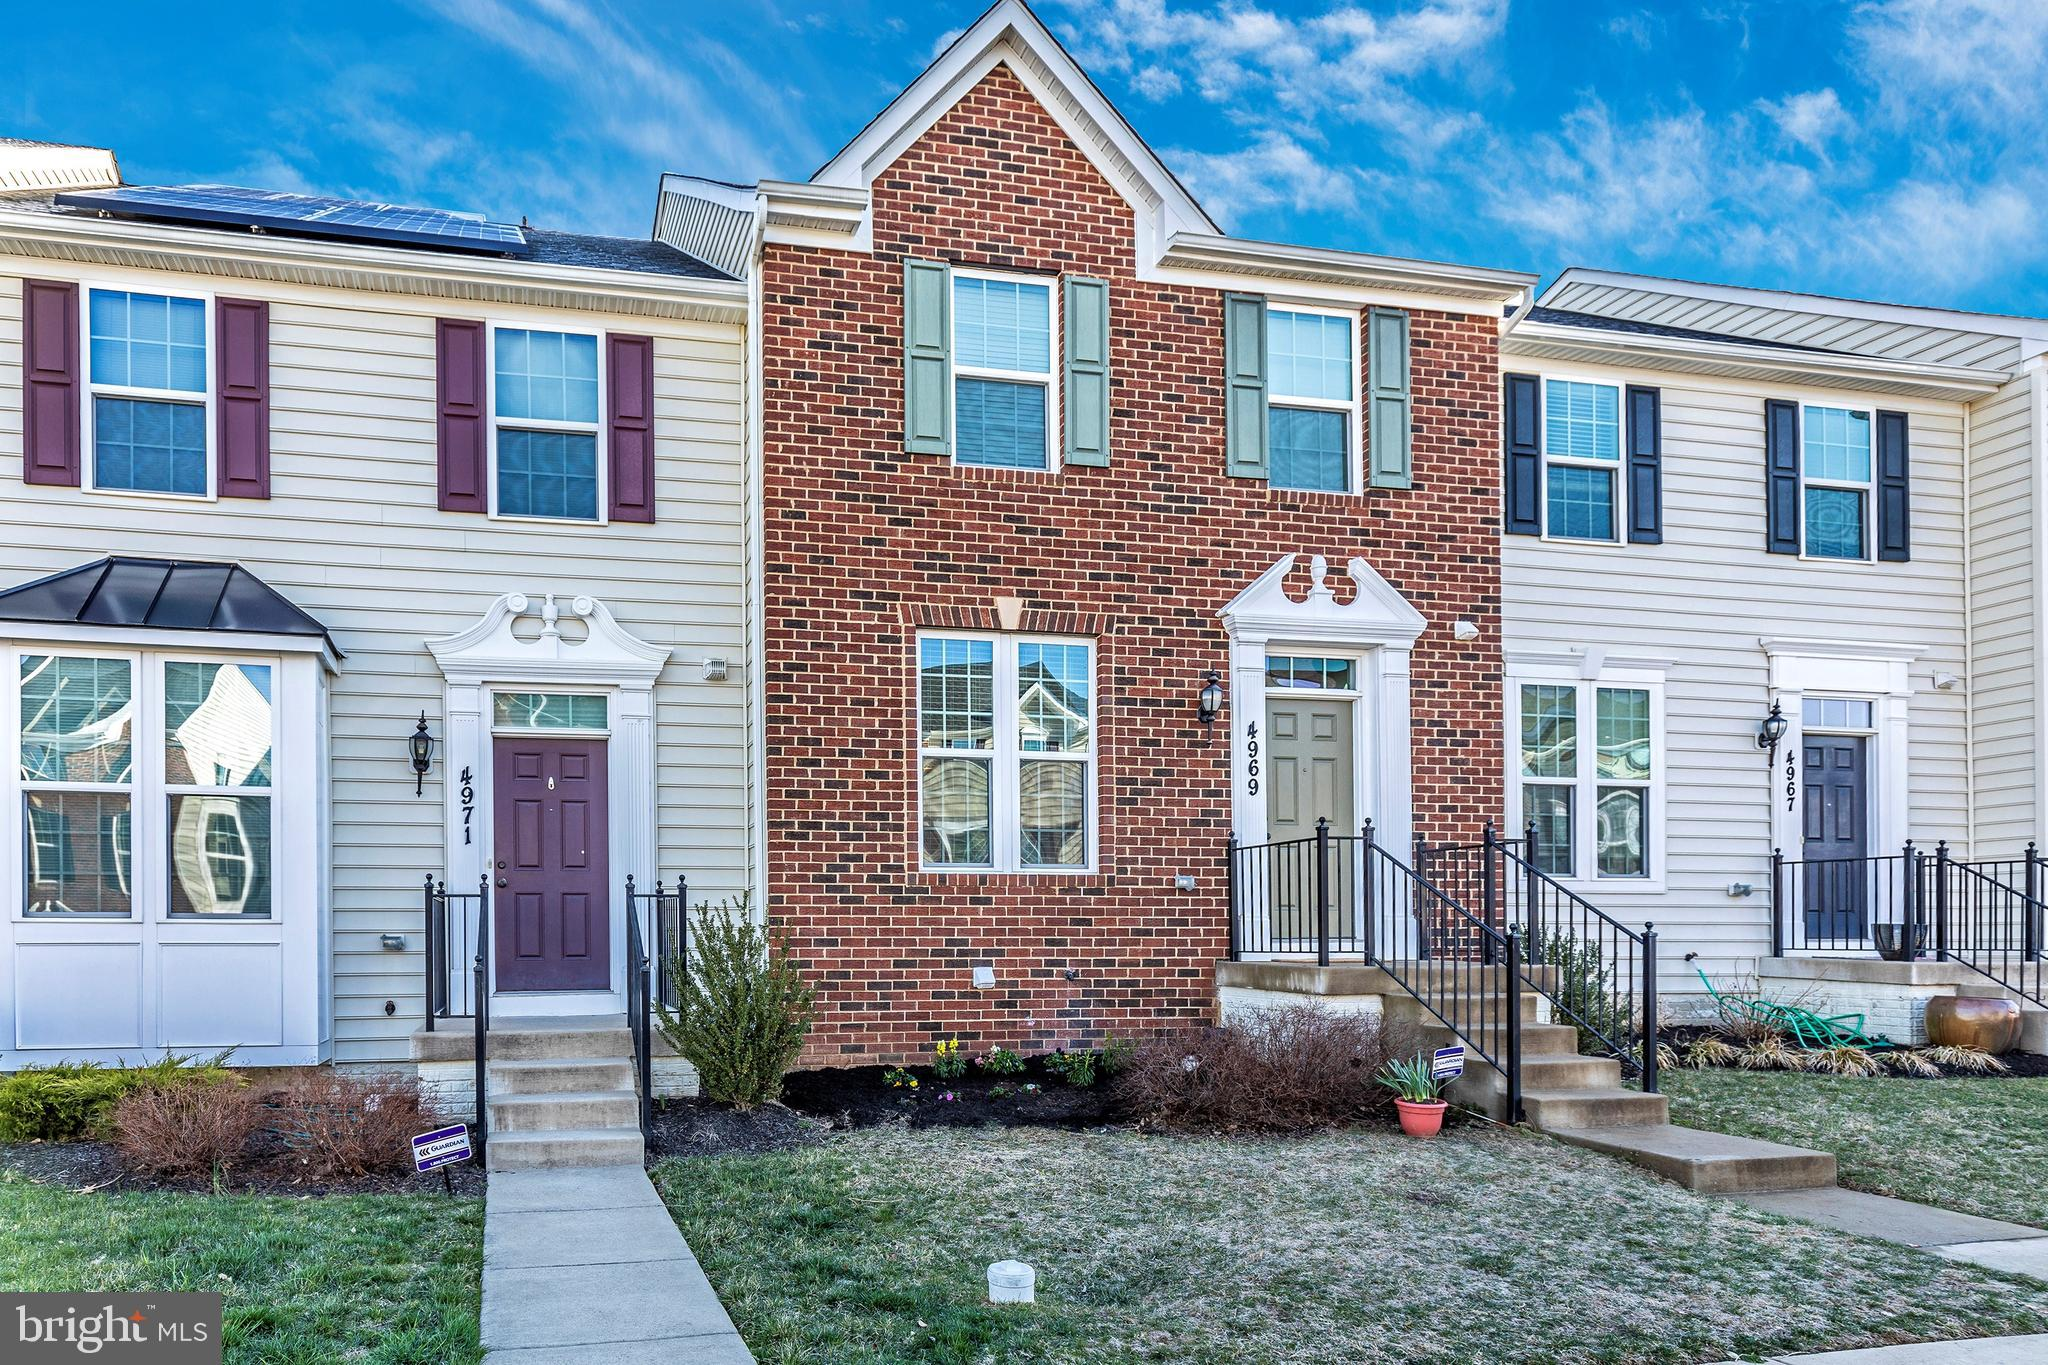 4969 SMALL GAINS WAY, FREDERICK, MD 21703